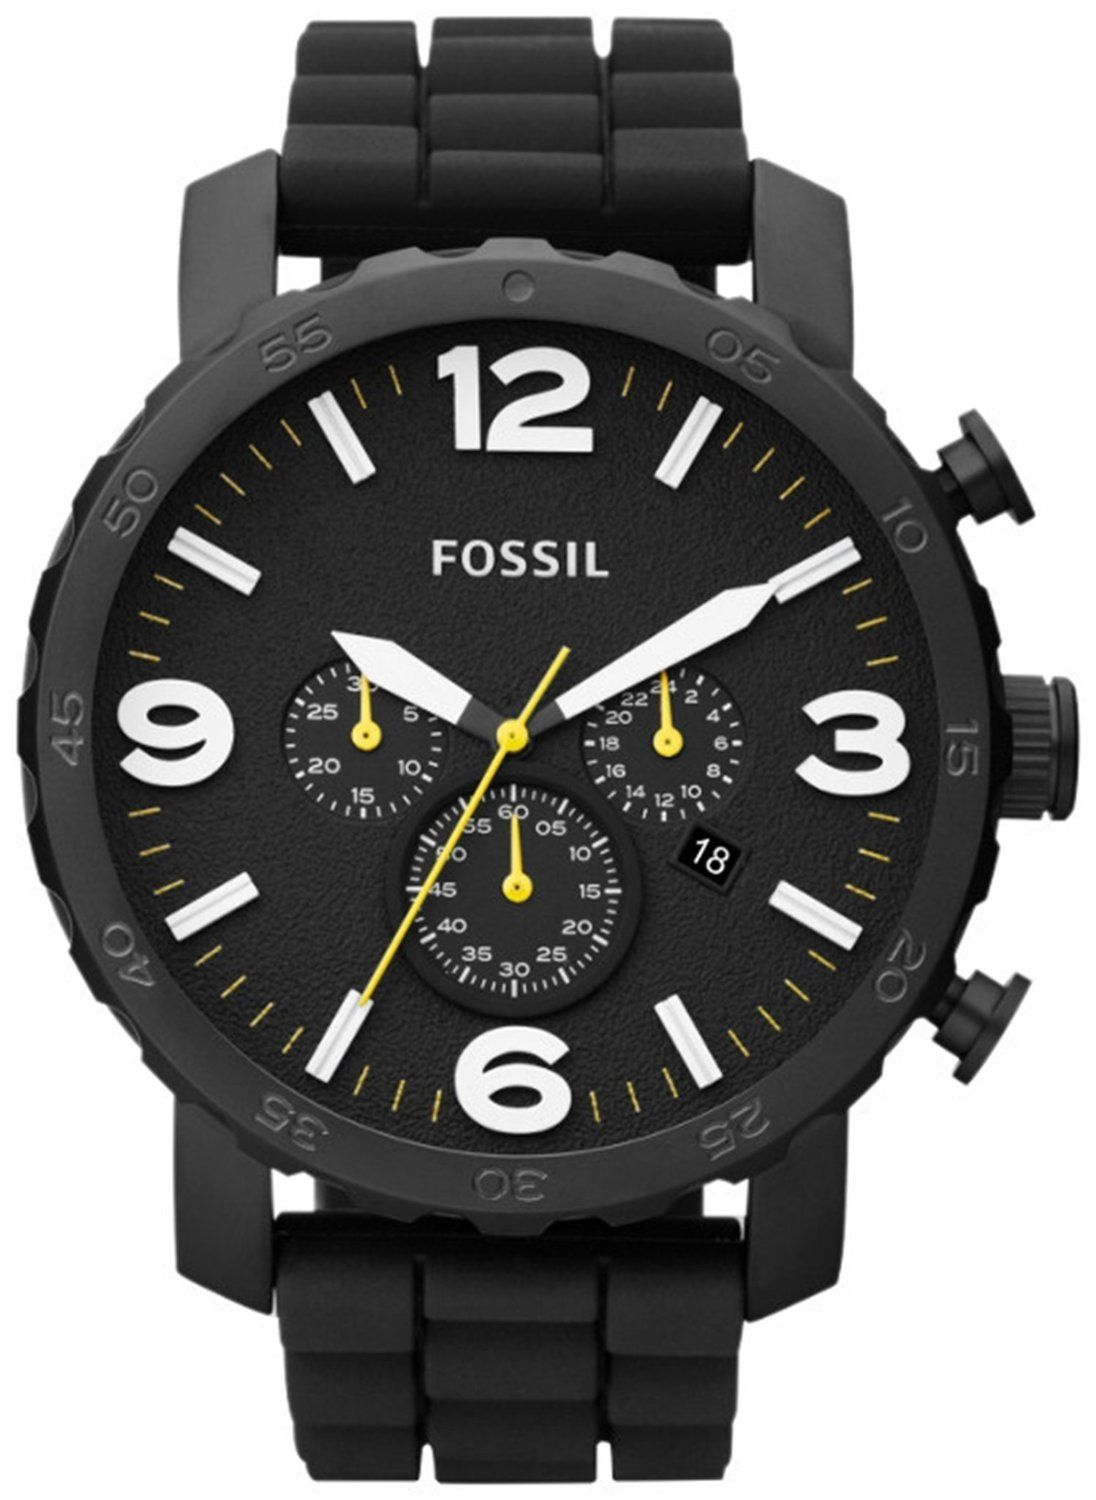 bf5ffbb338db7 Fossil Men s JR1425 Nate Chronograph Black Silicone Watch  Watches   Amazon.com